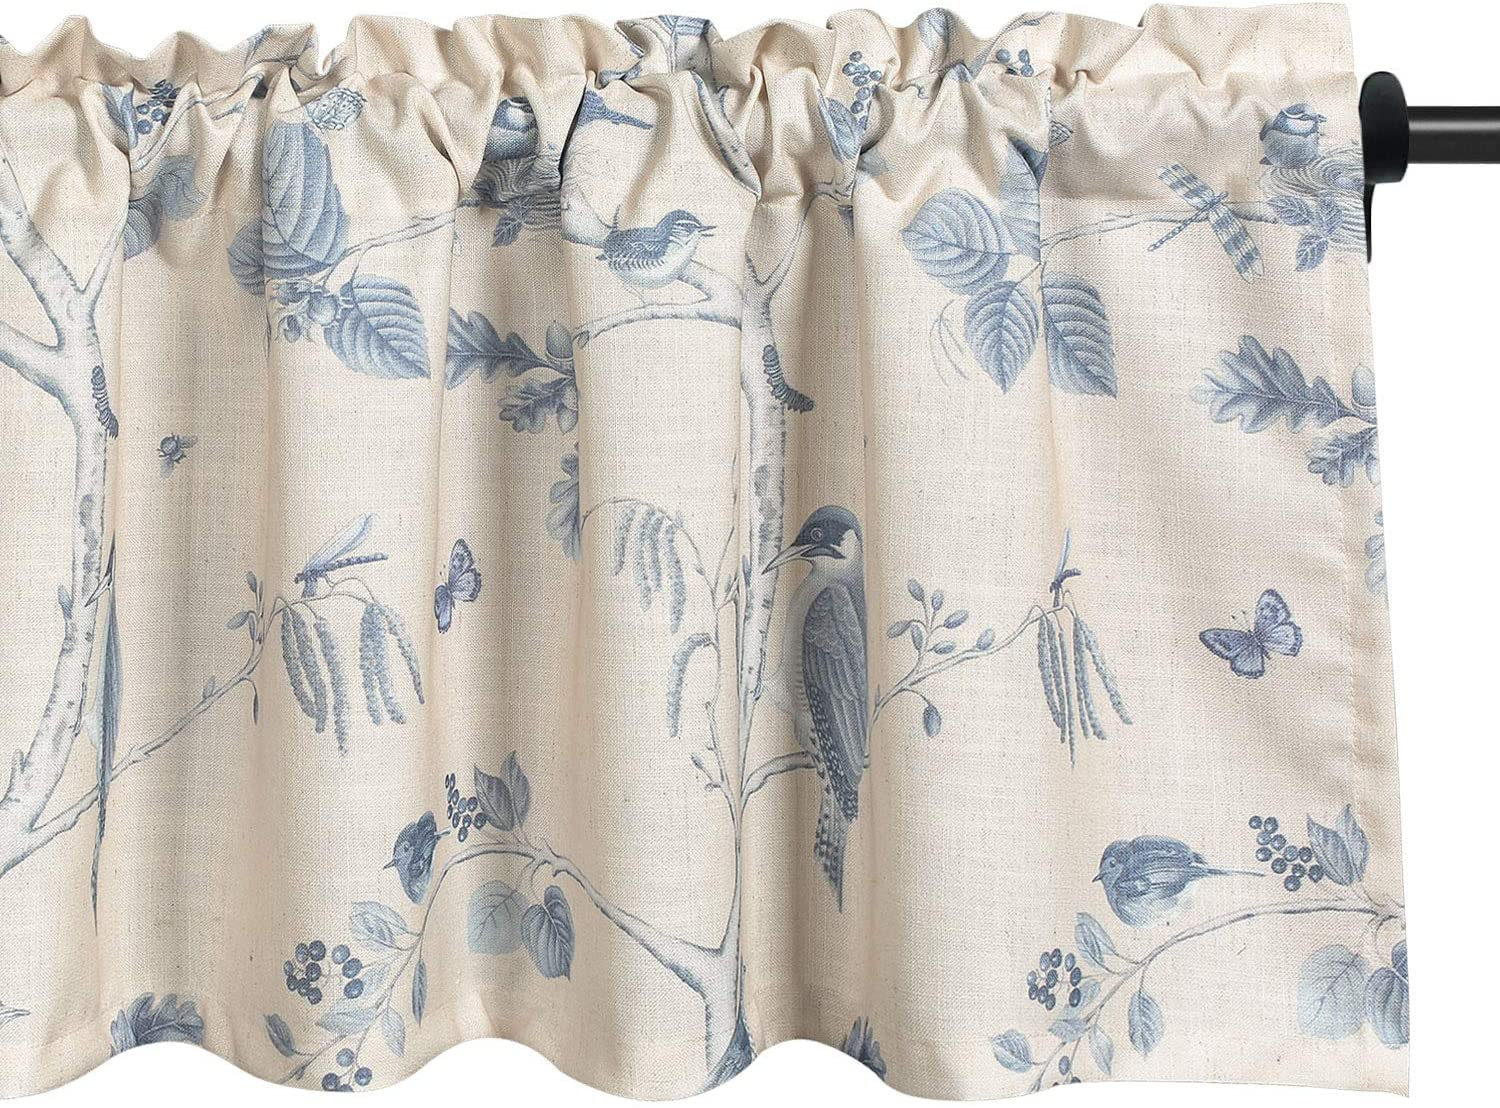 VOGOL Plant Pattern Valance Rustic Country Printed Curtains for Living Room, Top Pocket Birds Artist Window Valances for Kids Room Farmhouse, One Panel, 52 X 18 Inch, Blue